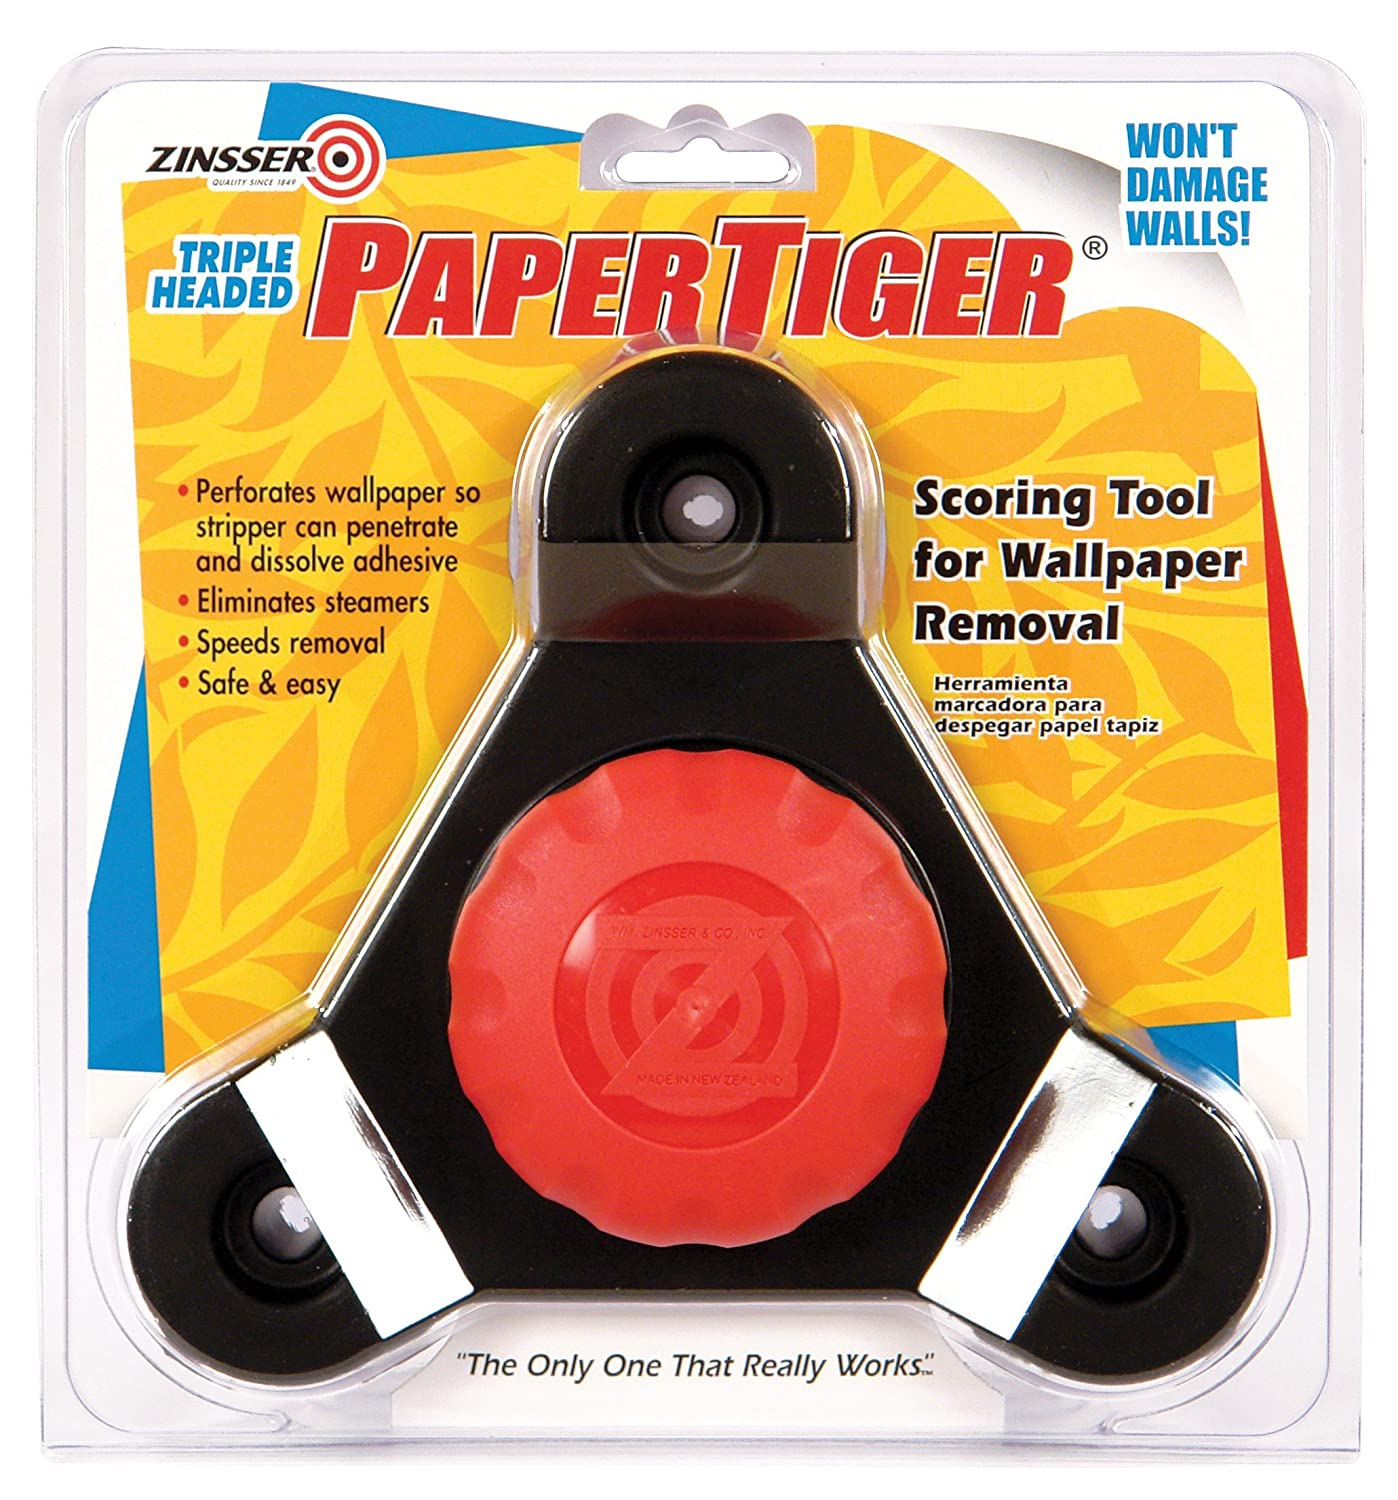 Zinsser Triple Head Paper Tiger Amazon DIY & Tools